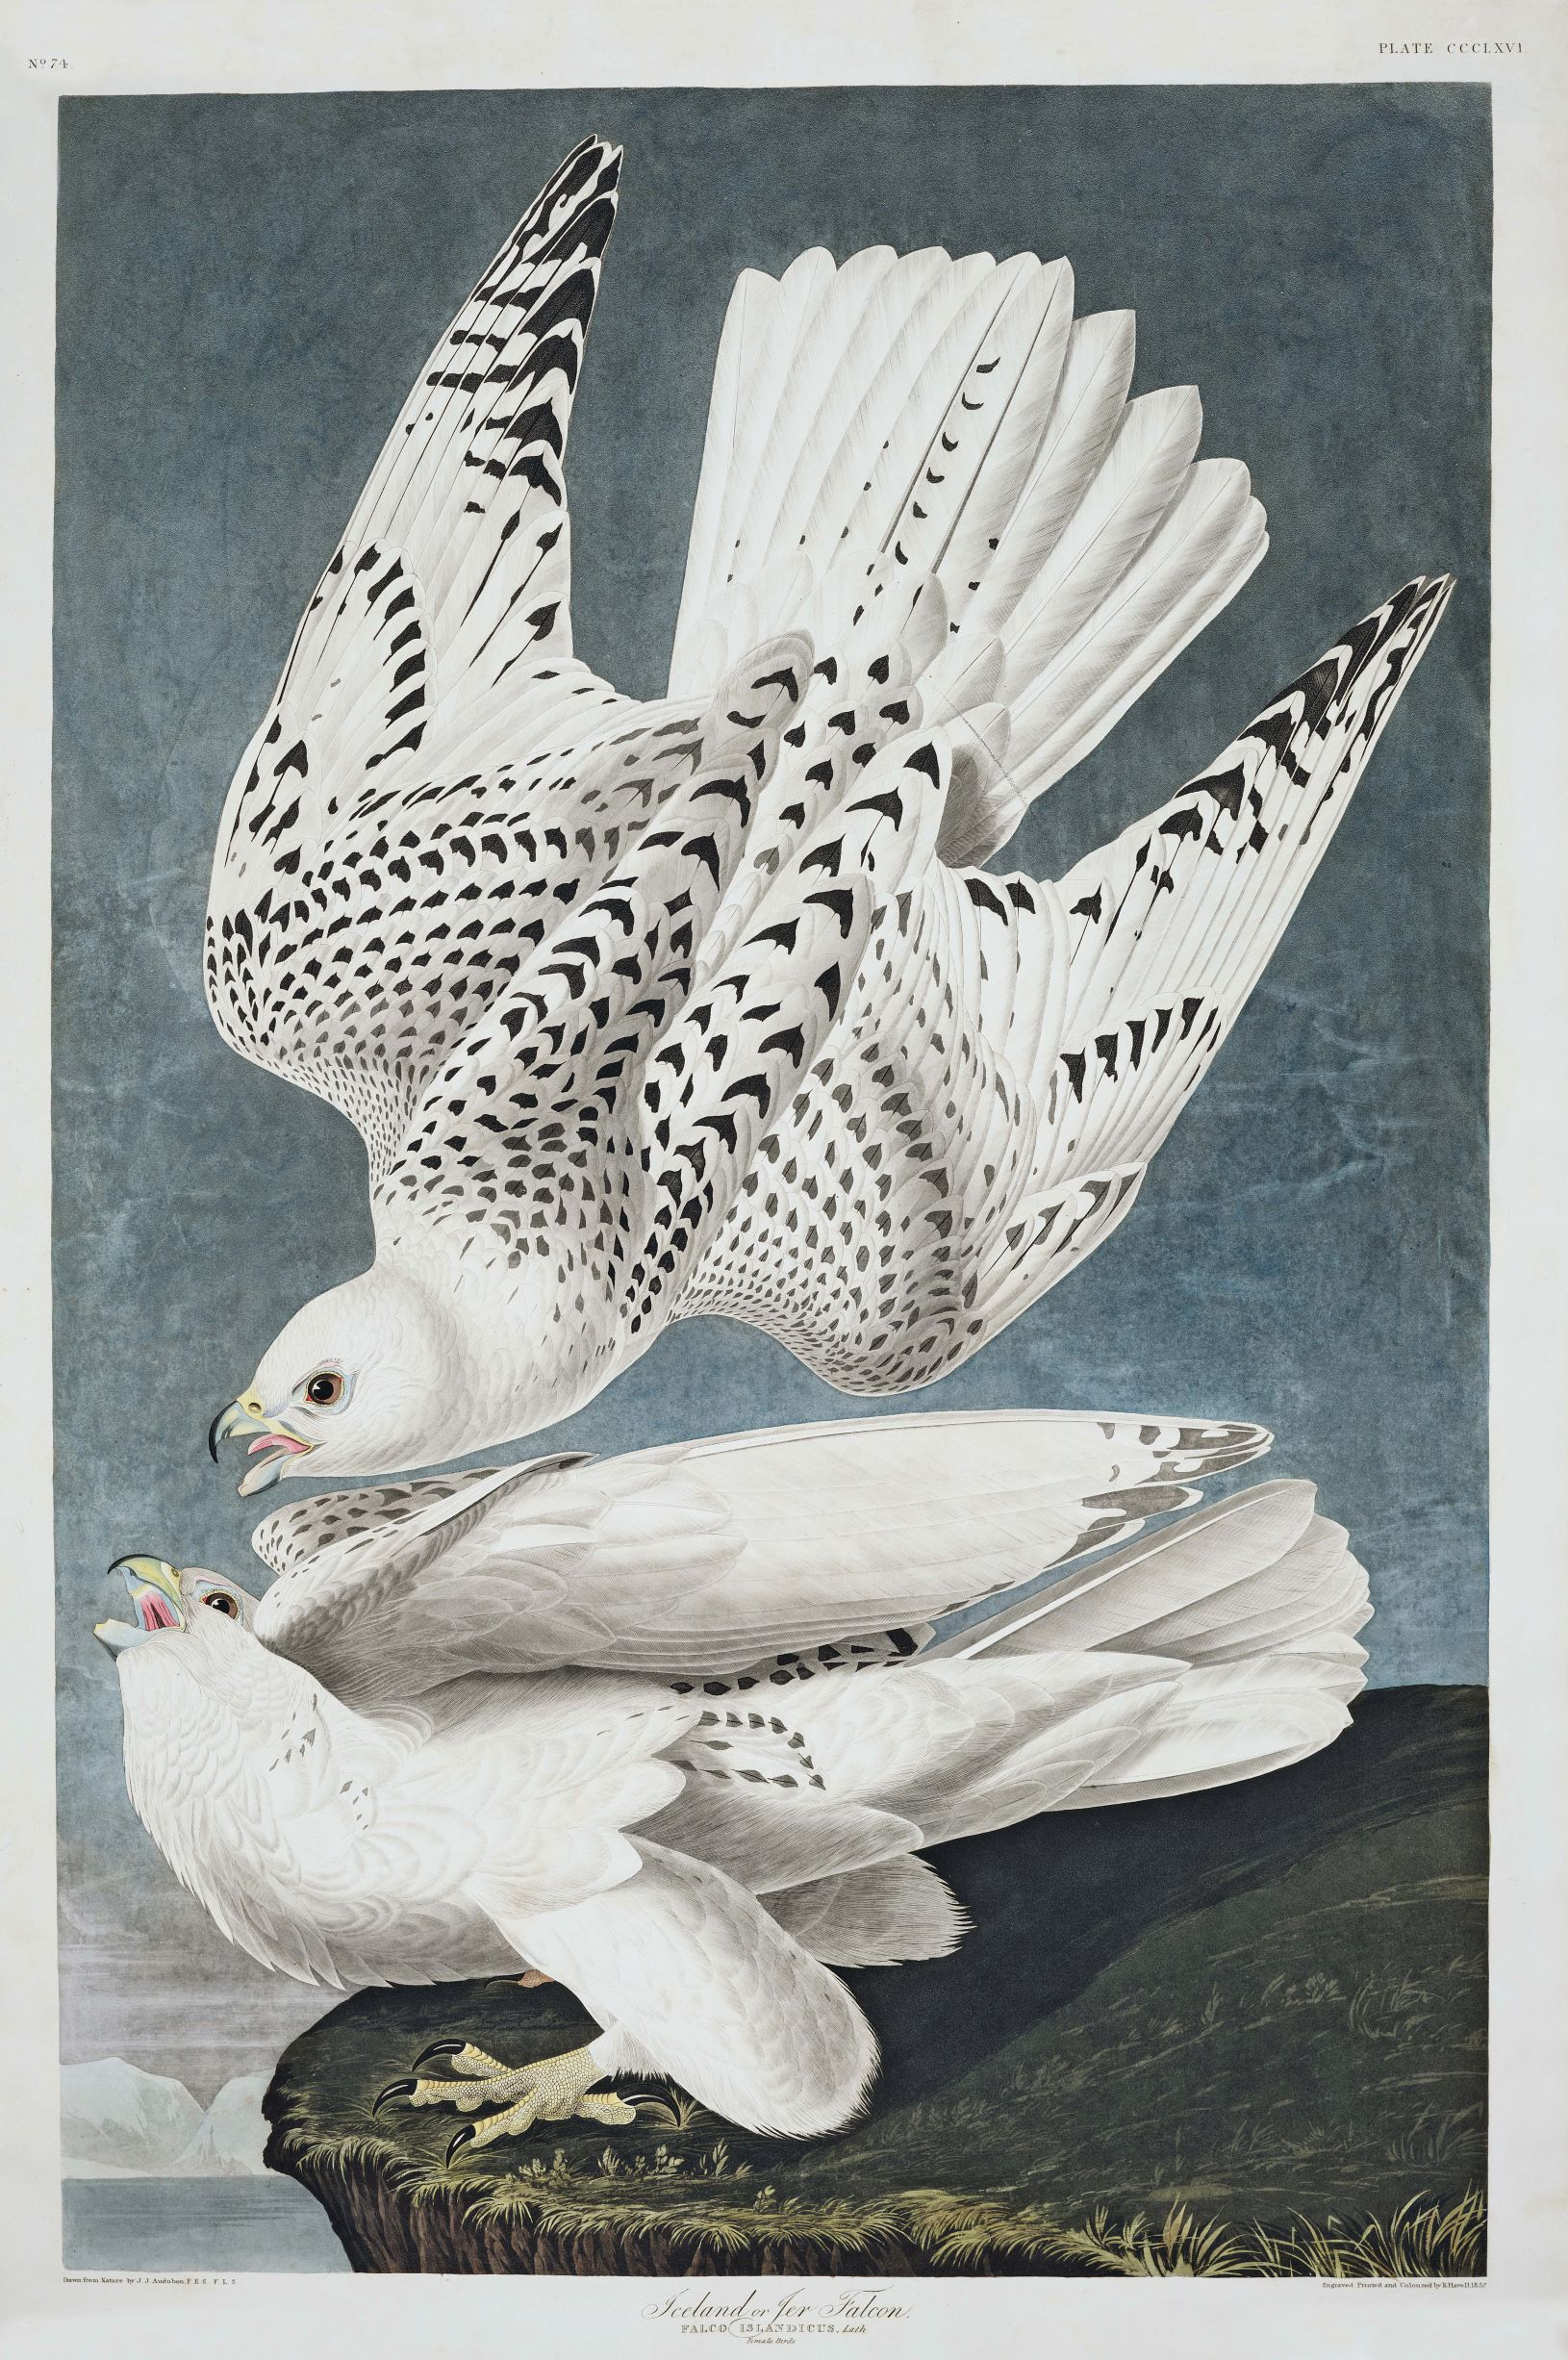 John James Audubon, Iceland, Iceland, or Jer Falcon (Falco islandicus), plate 366 from Birds of America, 1837. From Animal